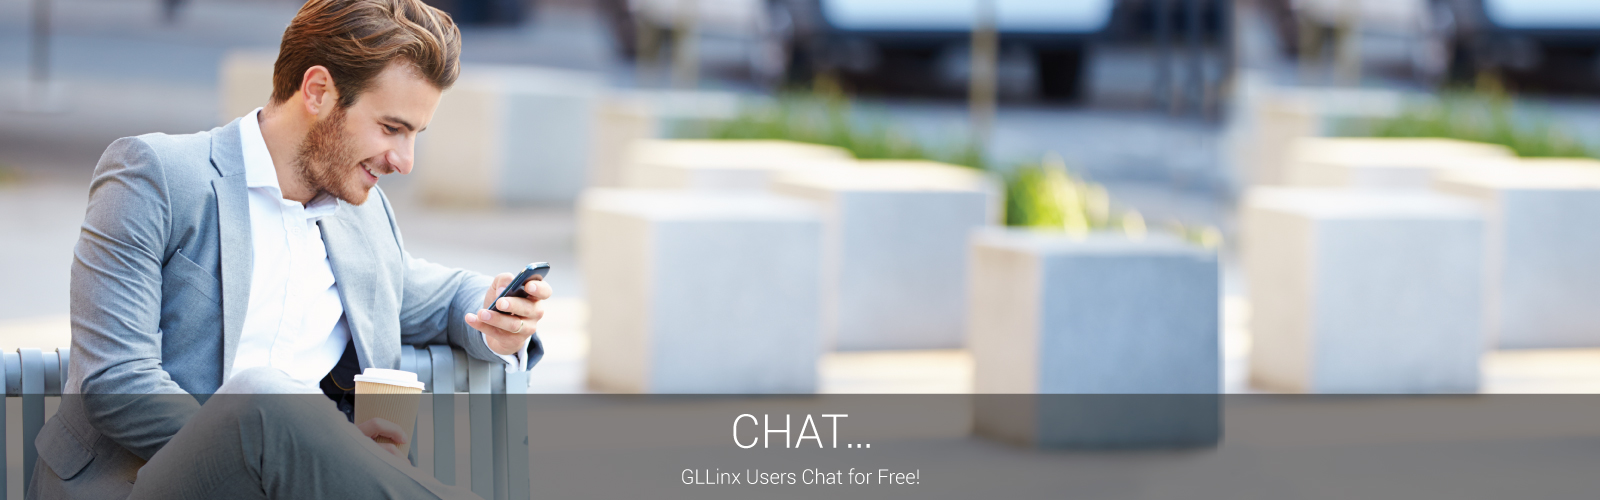 CHAT.GLlinx Users Chat for Free!